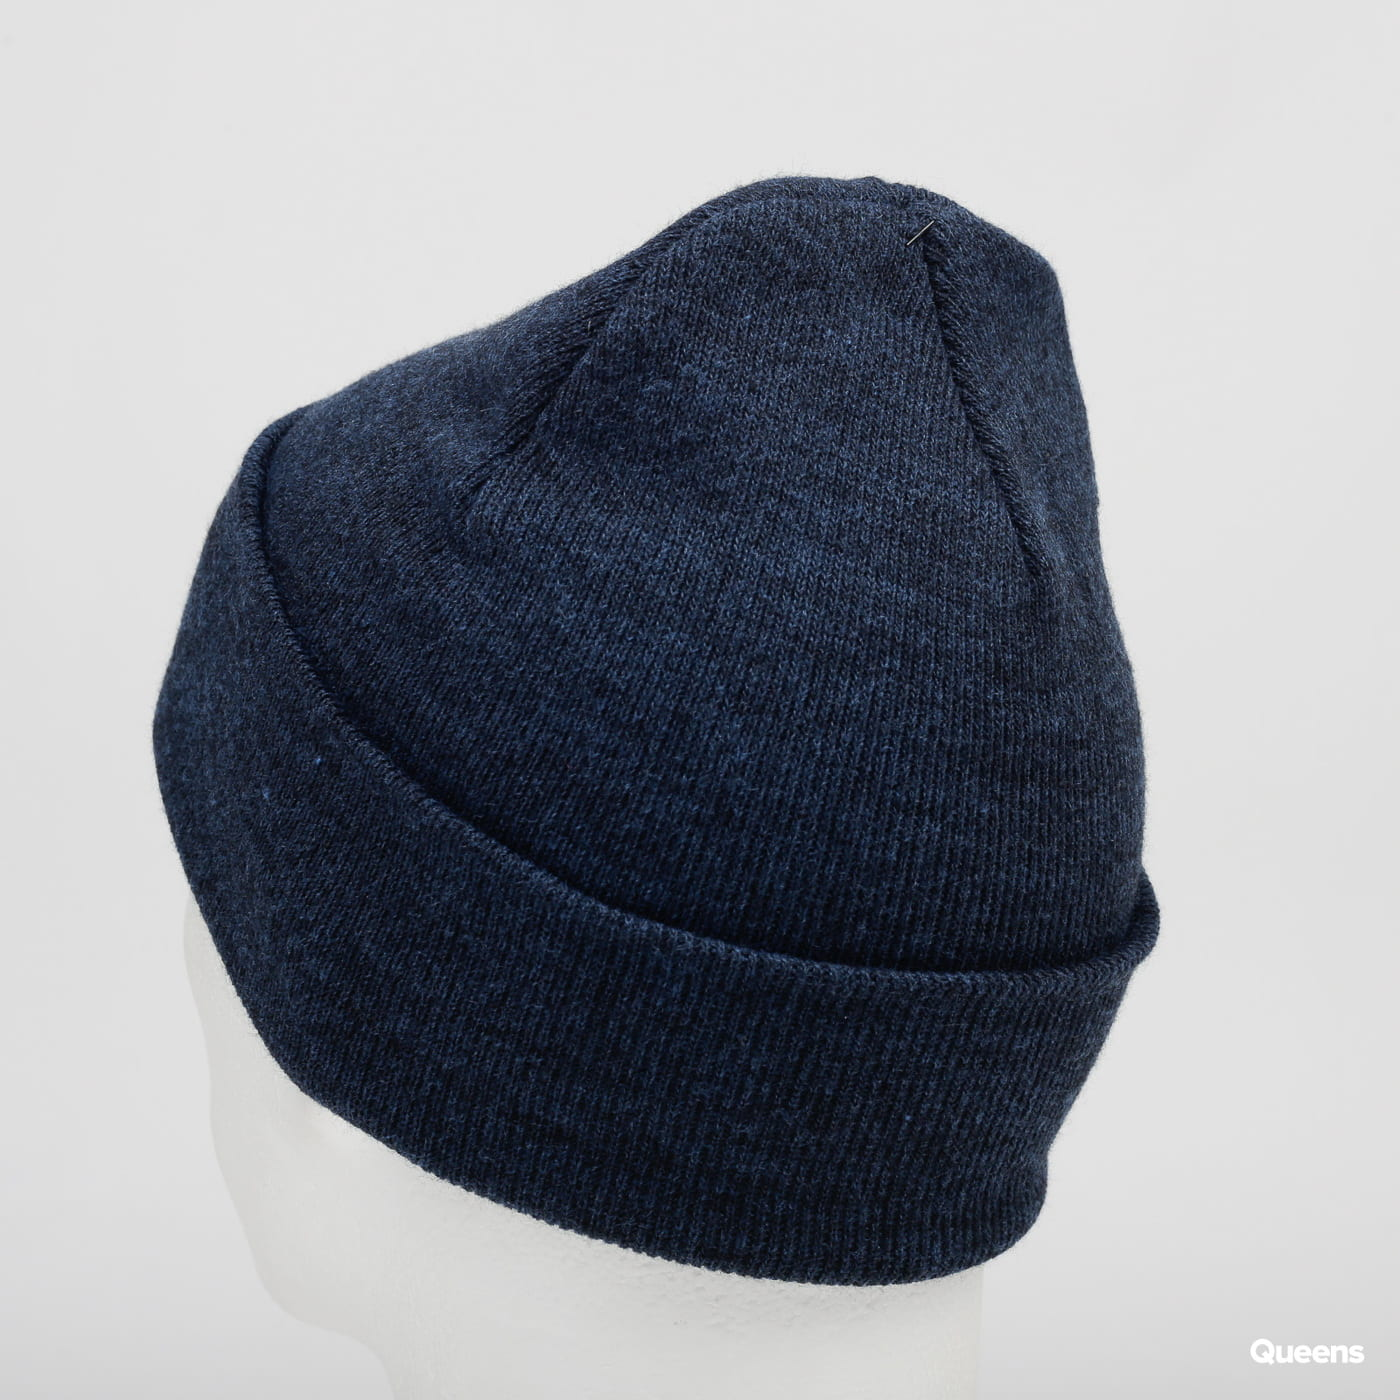 Levi's ® Batwing Embroidered Beanie melange navy